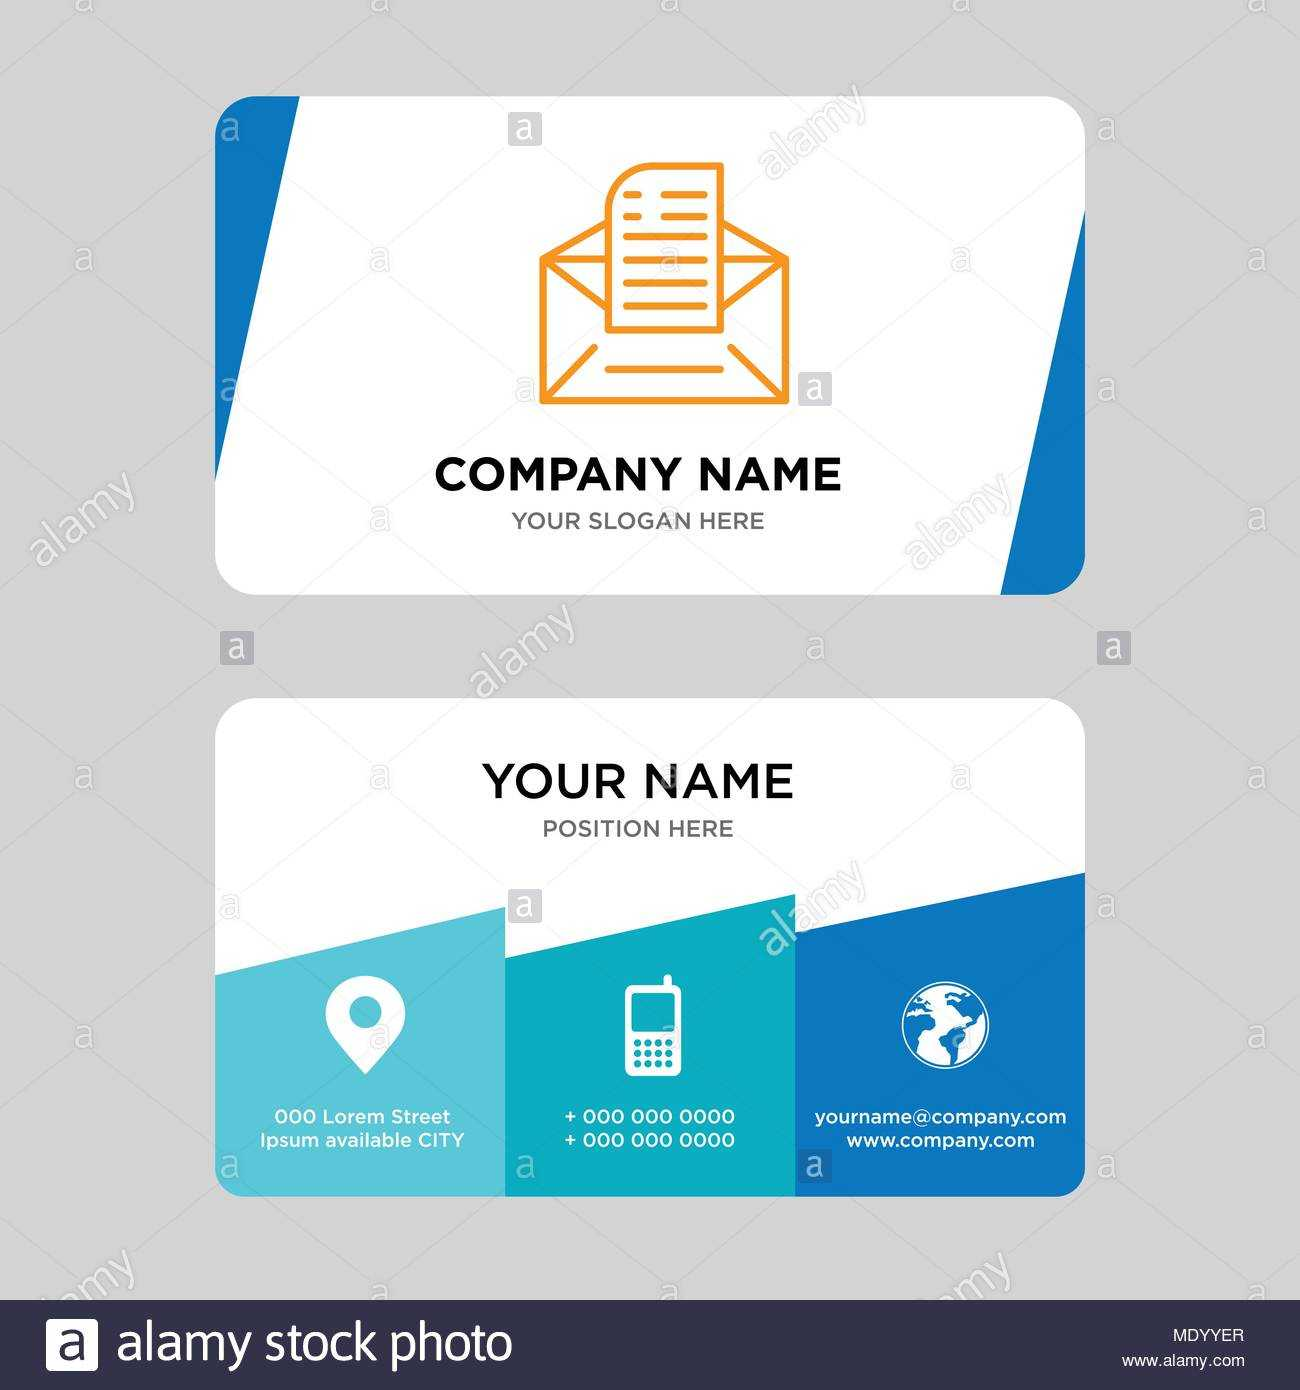 Email Business Card Design Template, Visiting For Your For Email Business Card Templates